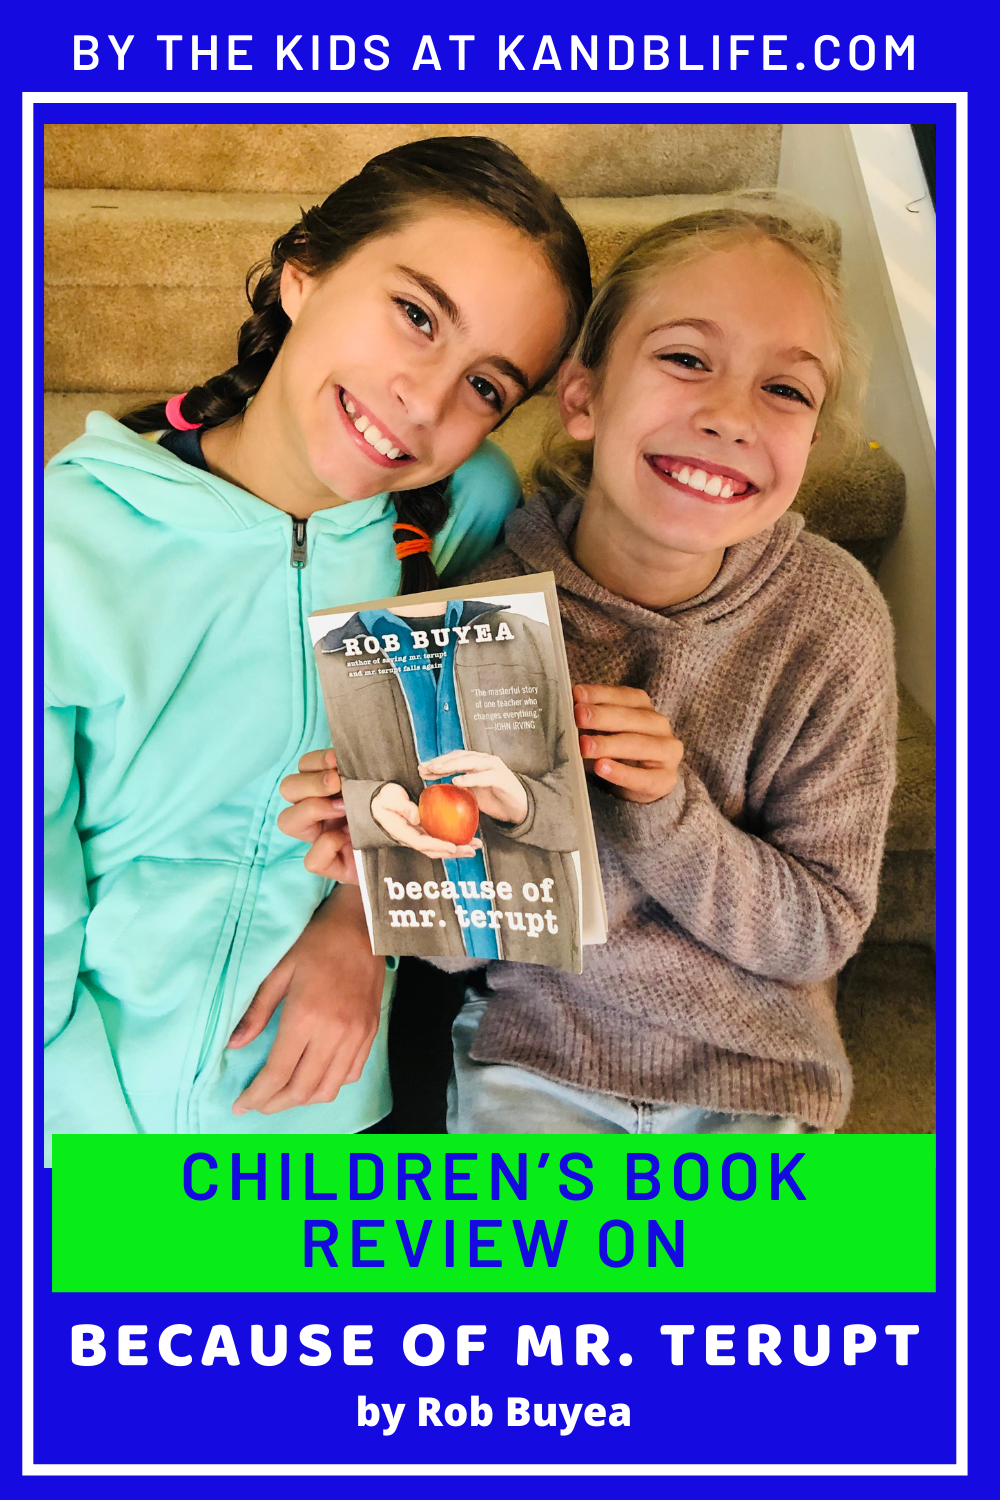 A great Children's Book Review on Because of Mr. Terupt. 2 Girls holding the book.